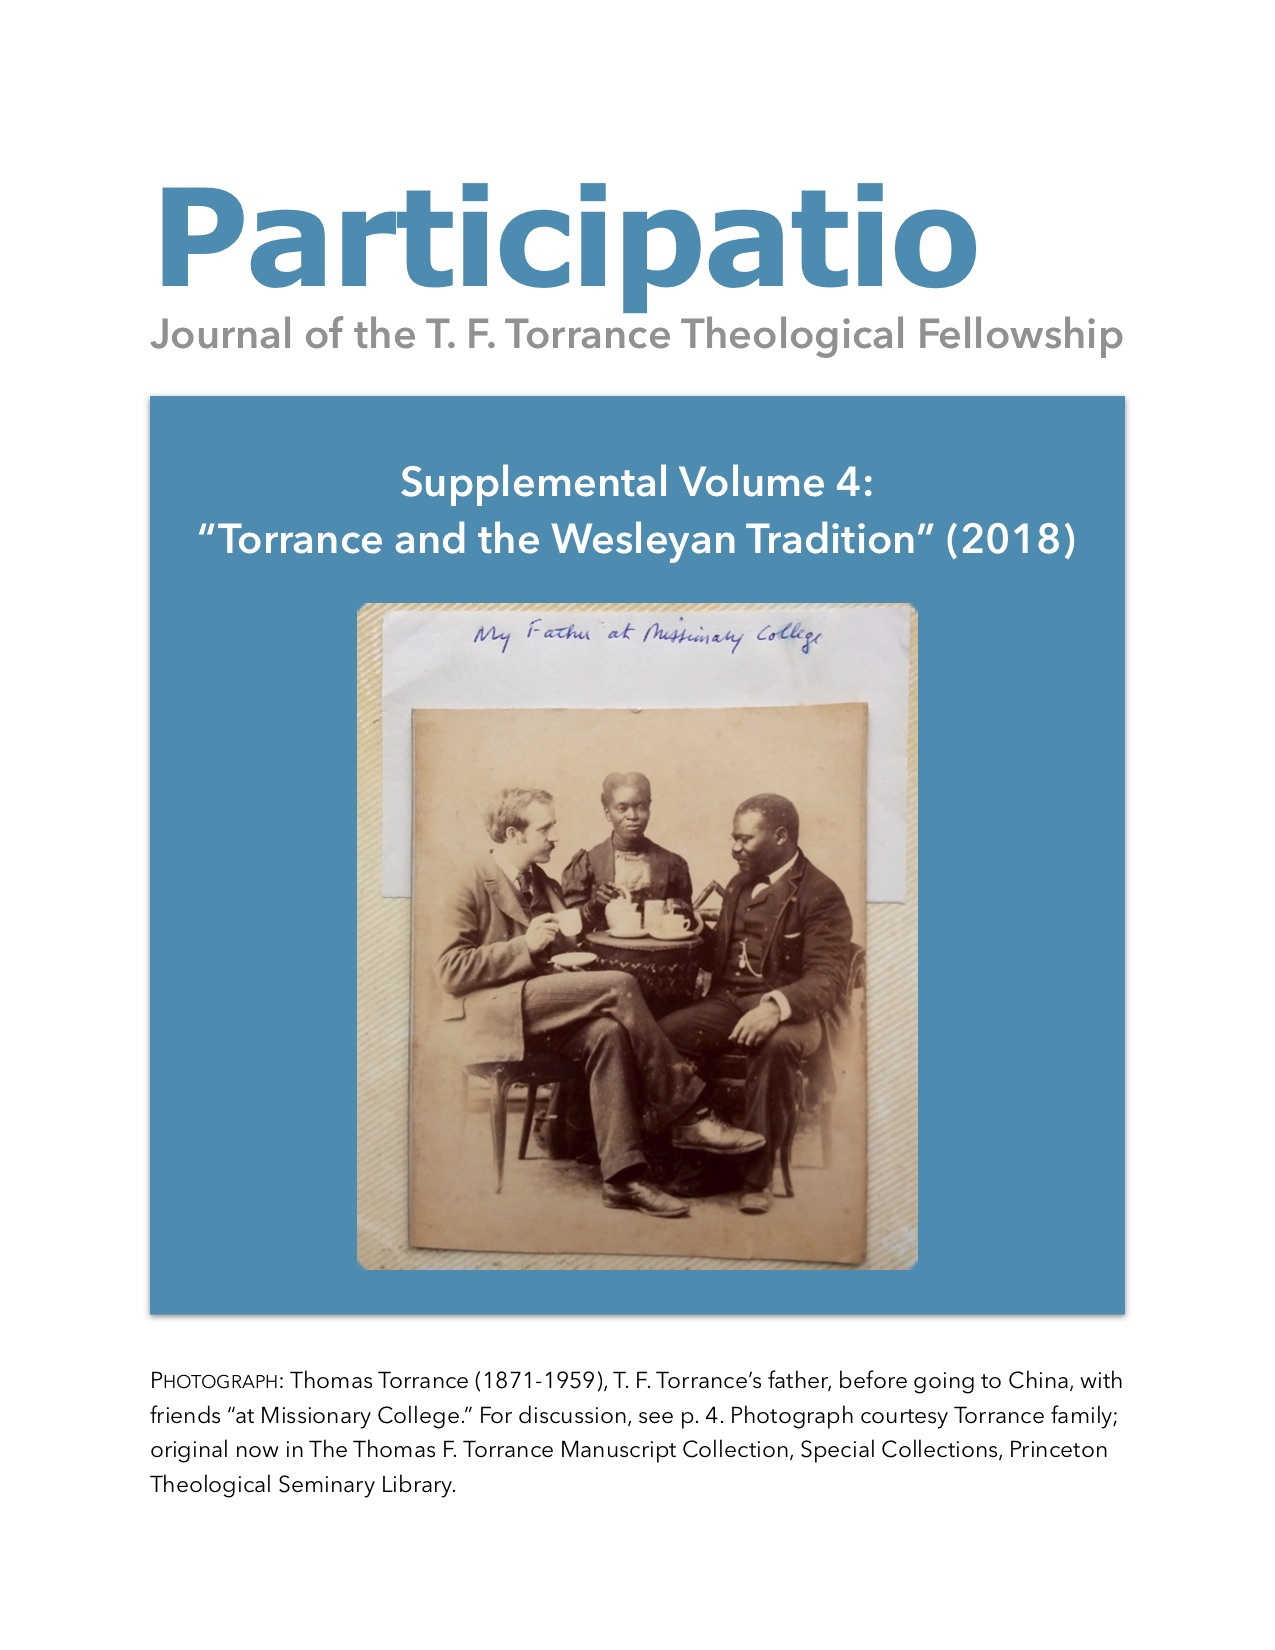 Participatio 2018, Supplement volume 4, cover page